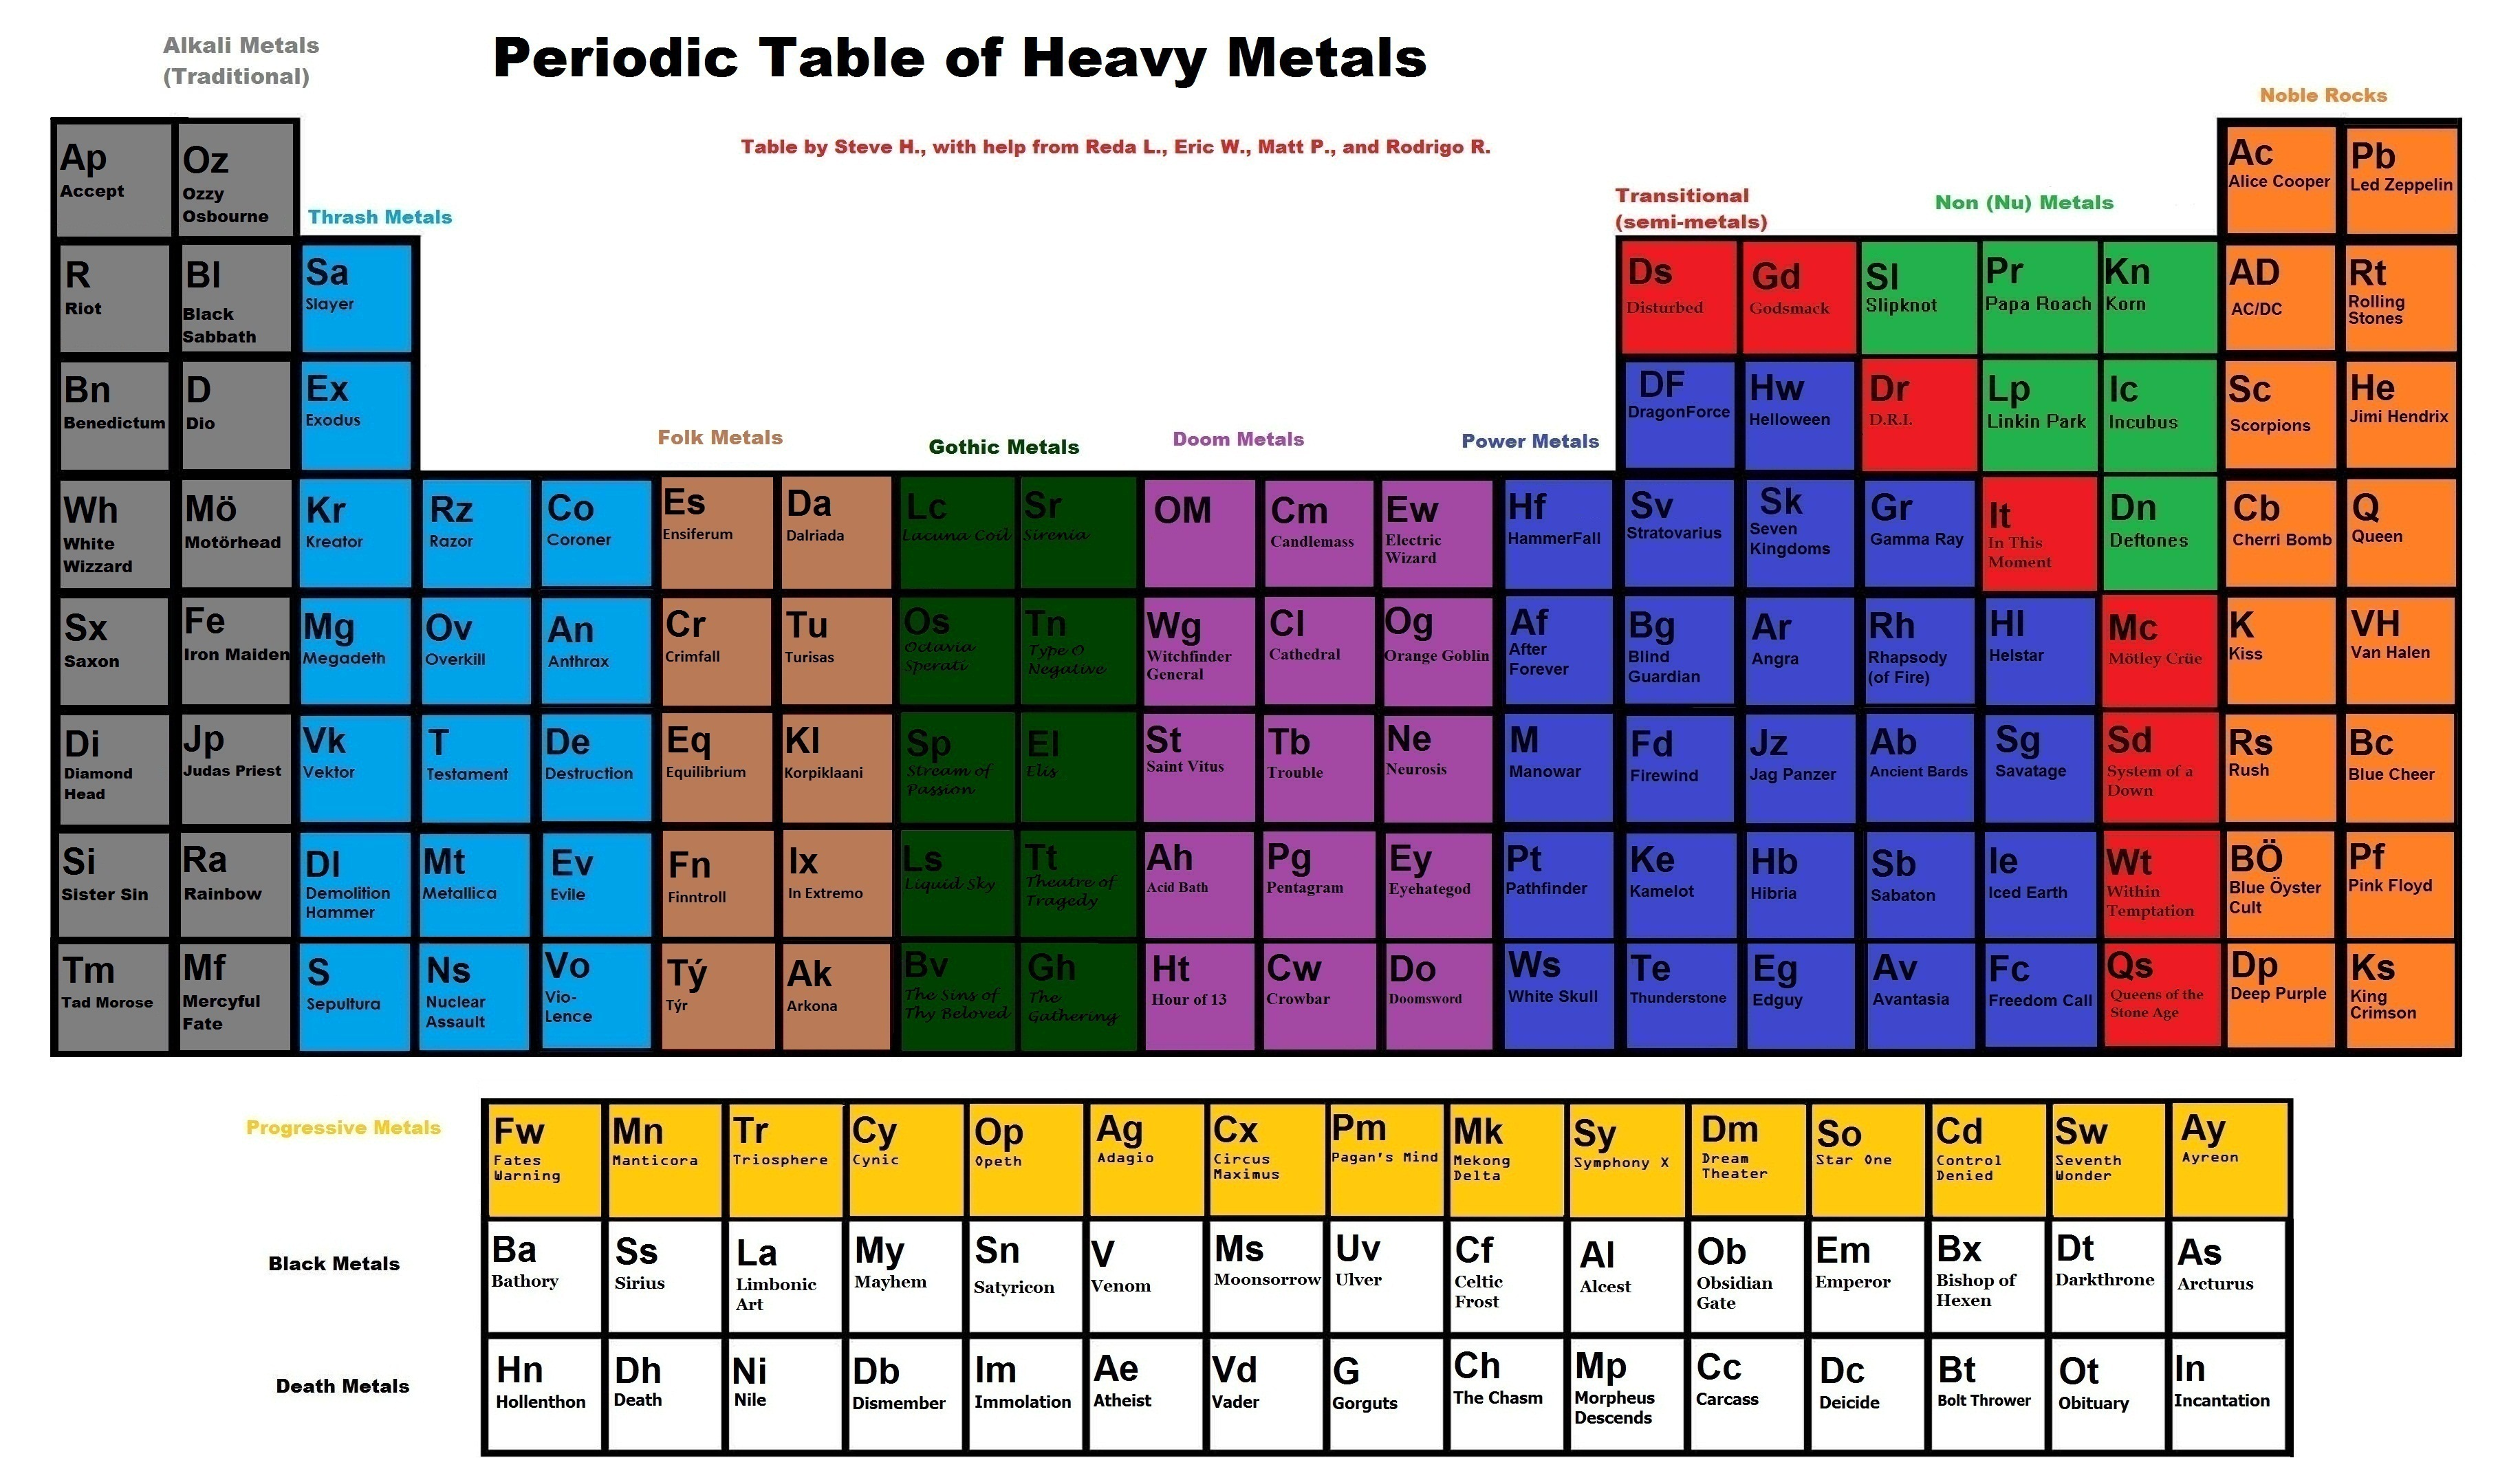 Periodic table of heavy metal by stevehno96 on deviantart periodic table of heavy metal by stevehno96 gamestrikefo Choice Image